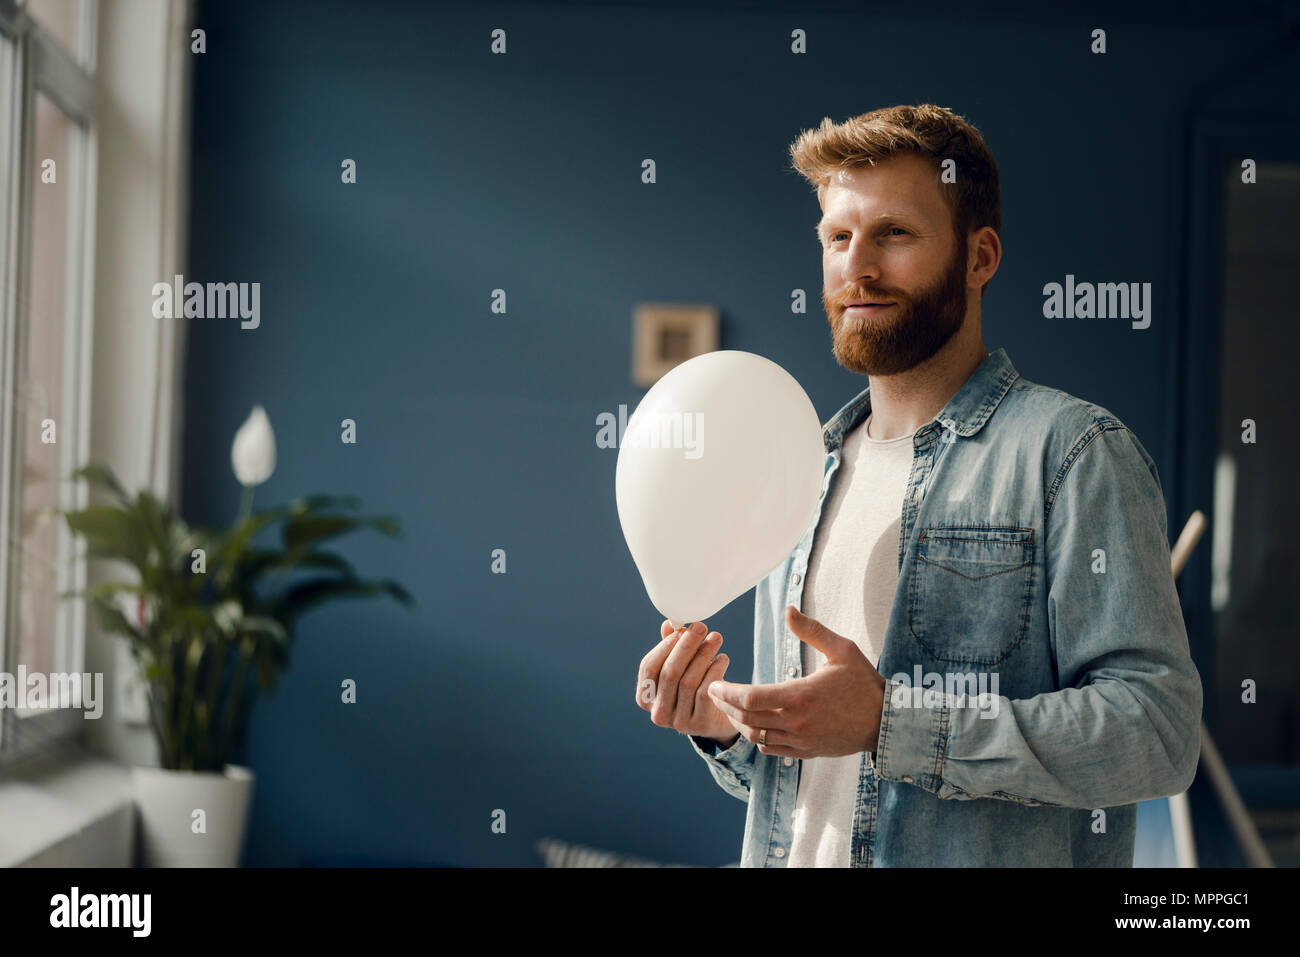 Man holding a balloon, smiling - Stock Image